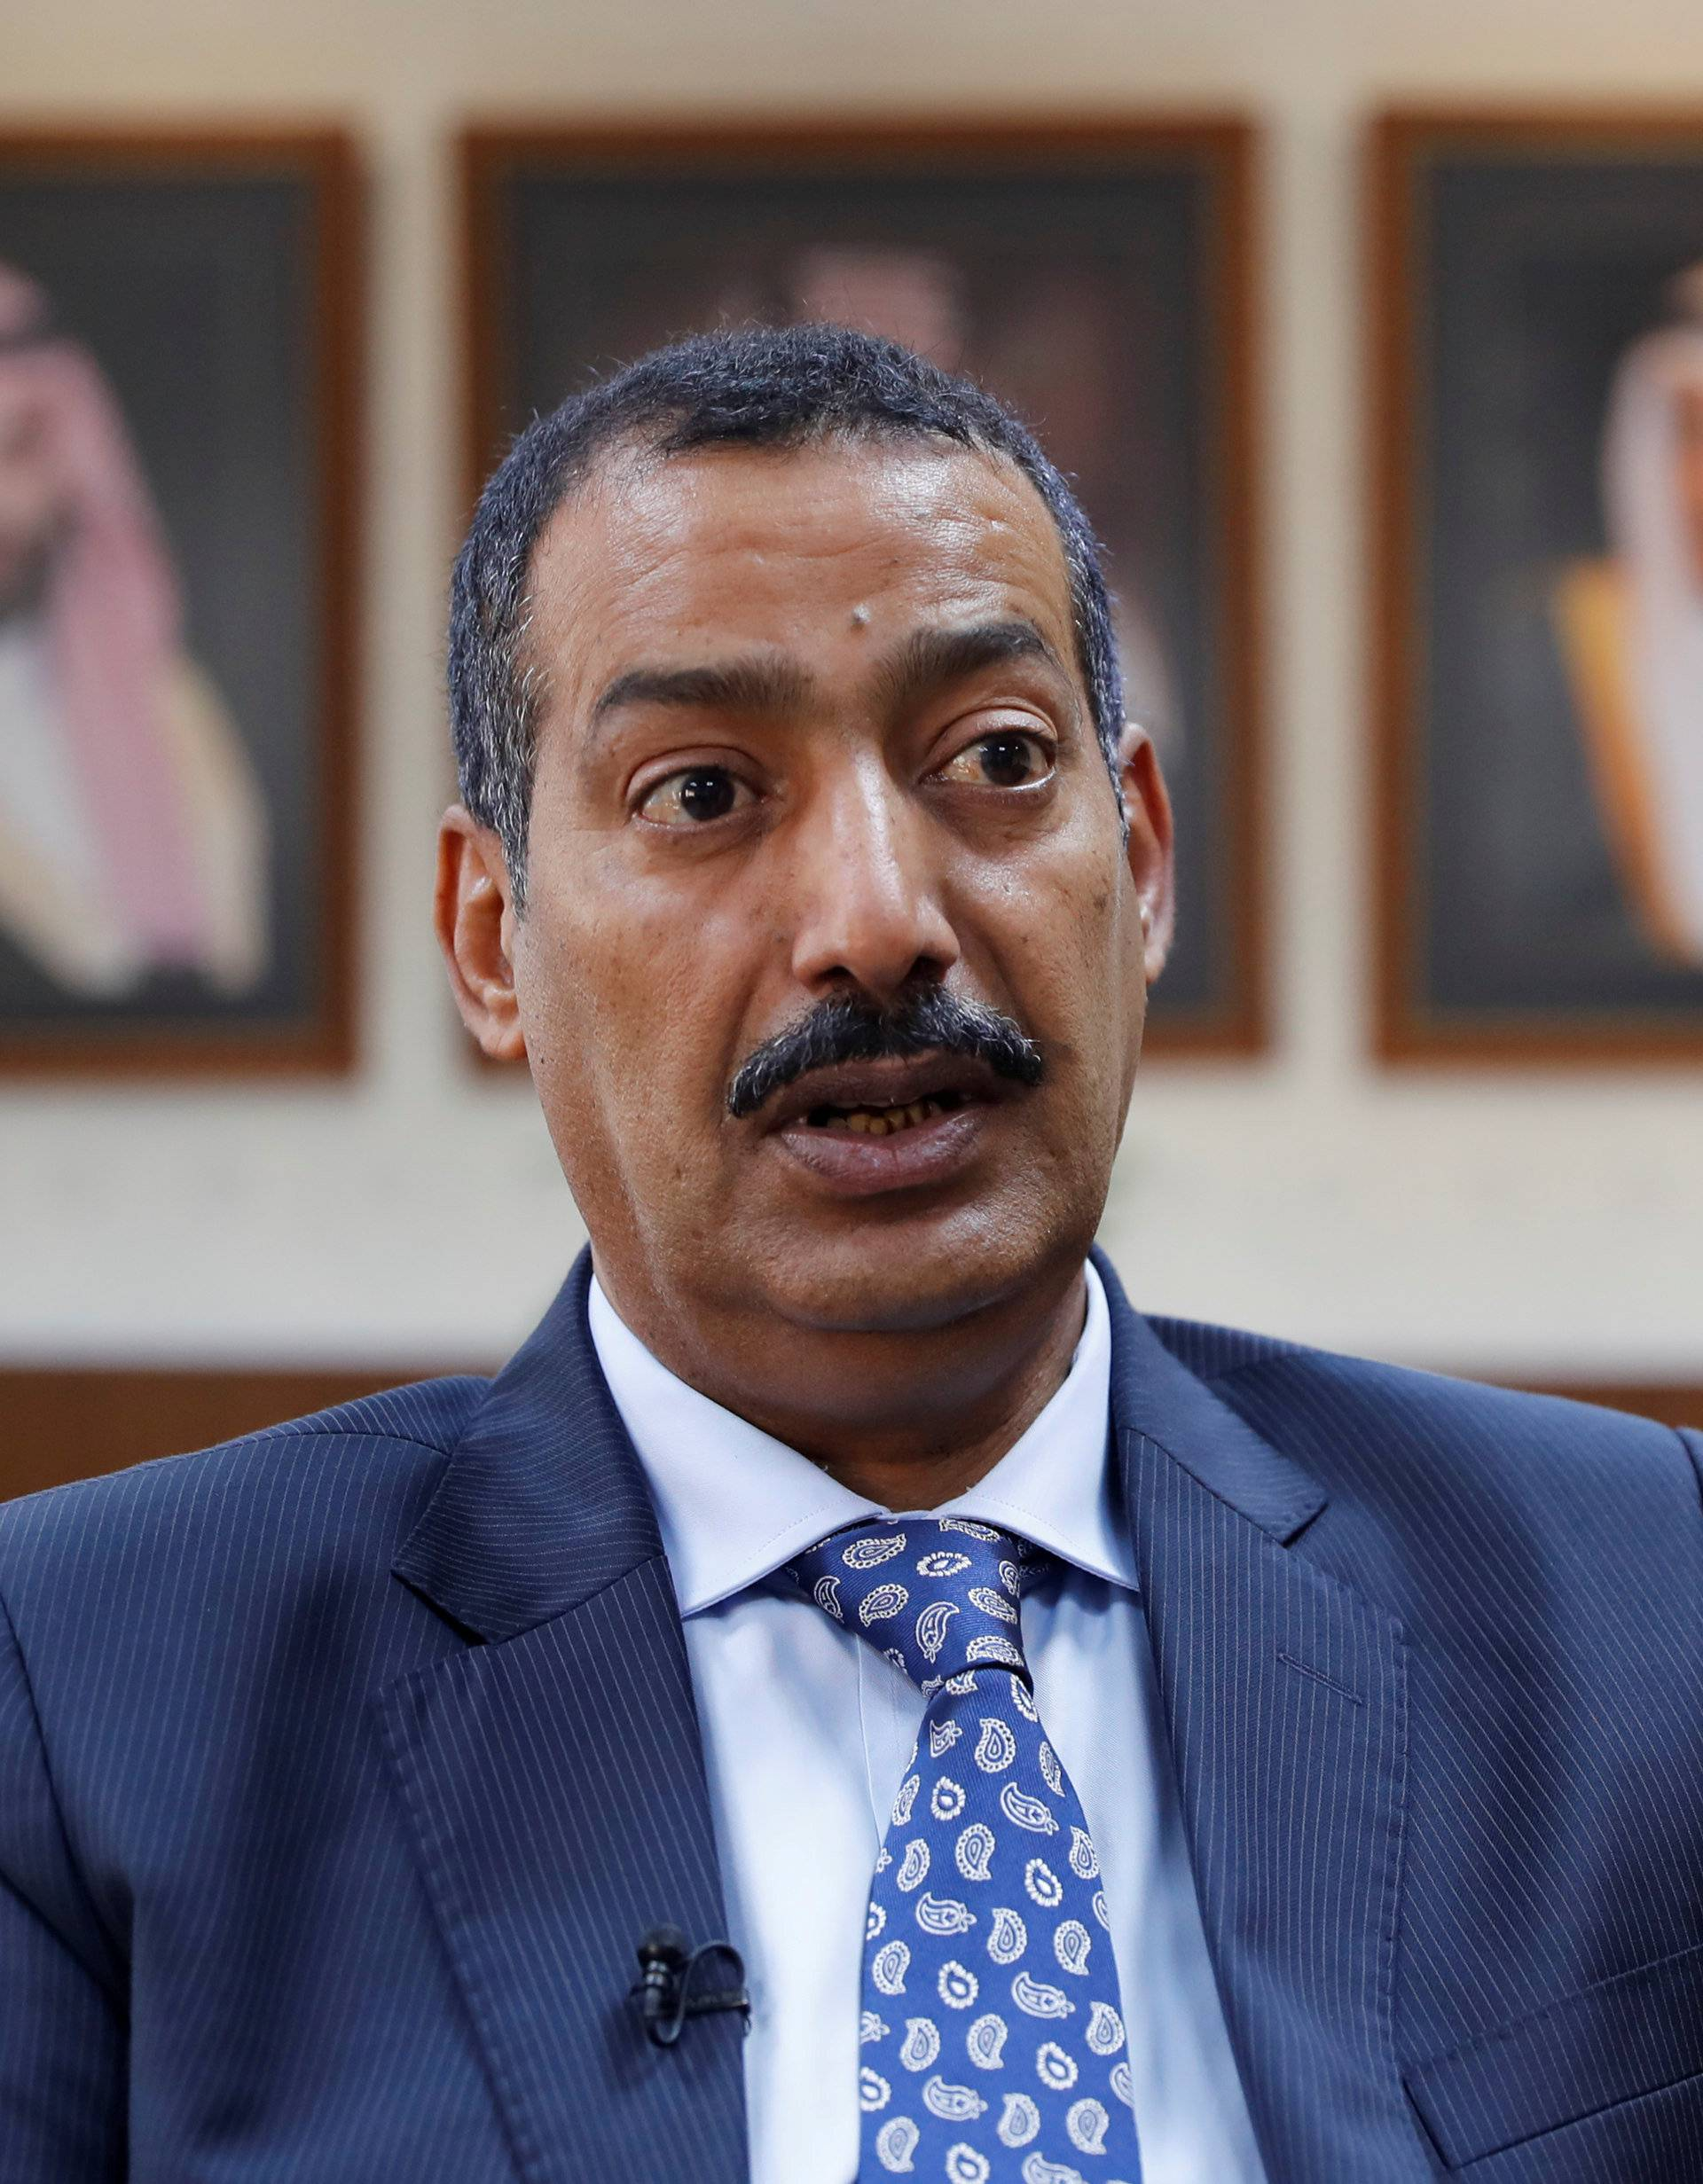 FILE PHOTO: Consul General of Saudi Arabia Mohammad al-Otaibi answers questions during an interview with Reuters at Saudi Arabia's consulate in Istanbul